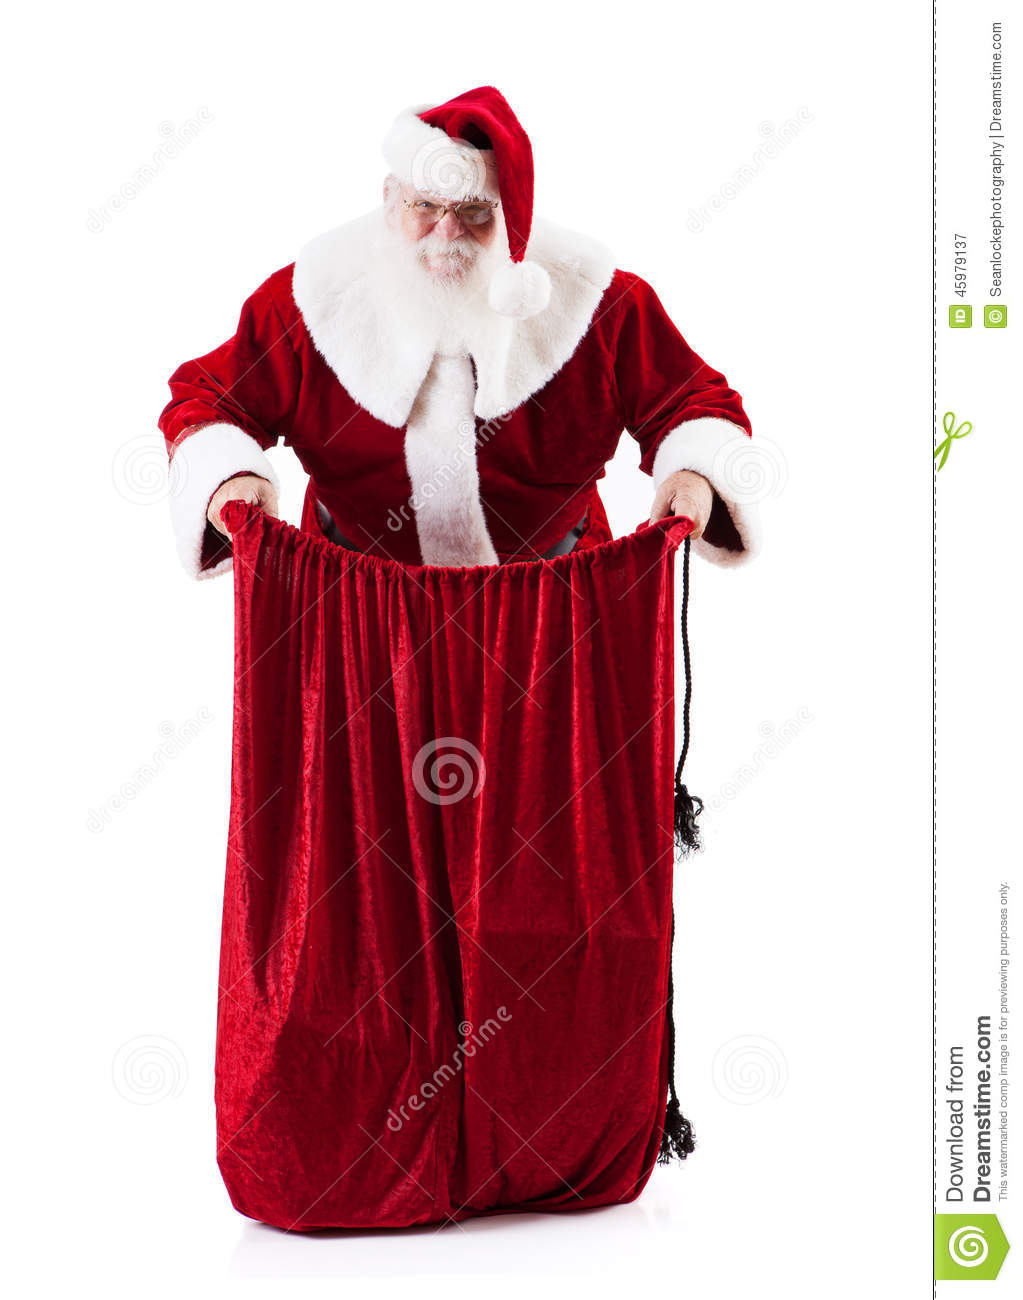 Traditional style authentic santa claus with real beard and handmade